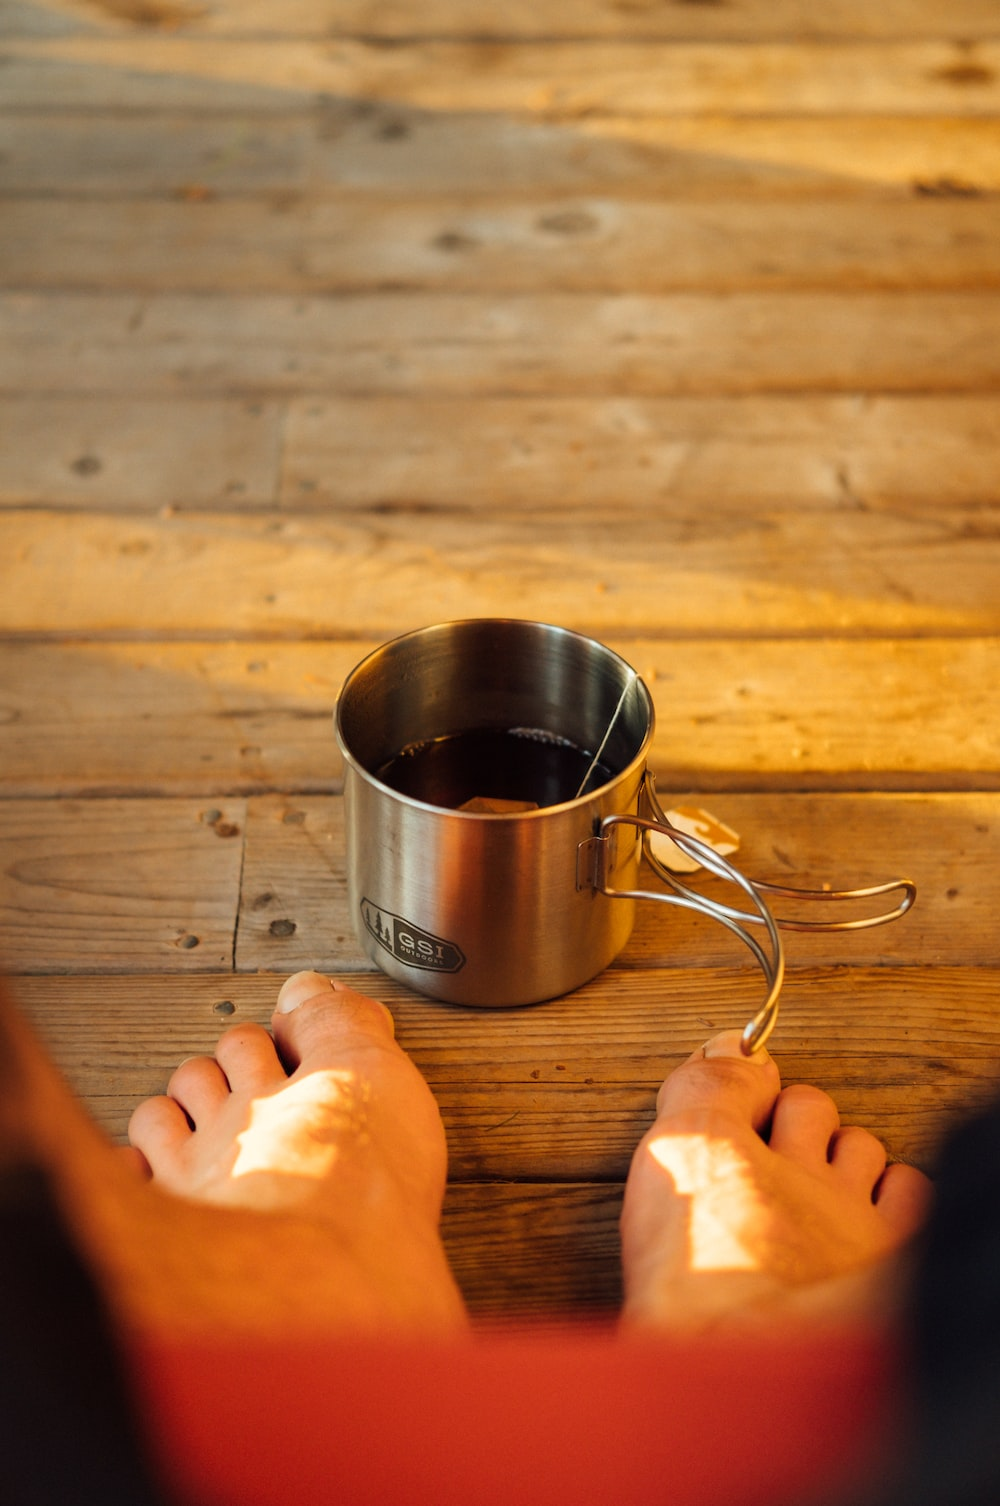 silver cup on brown wooden surface